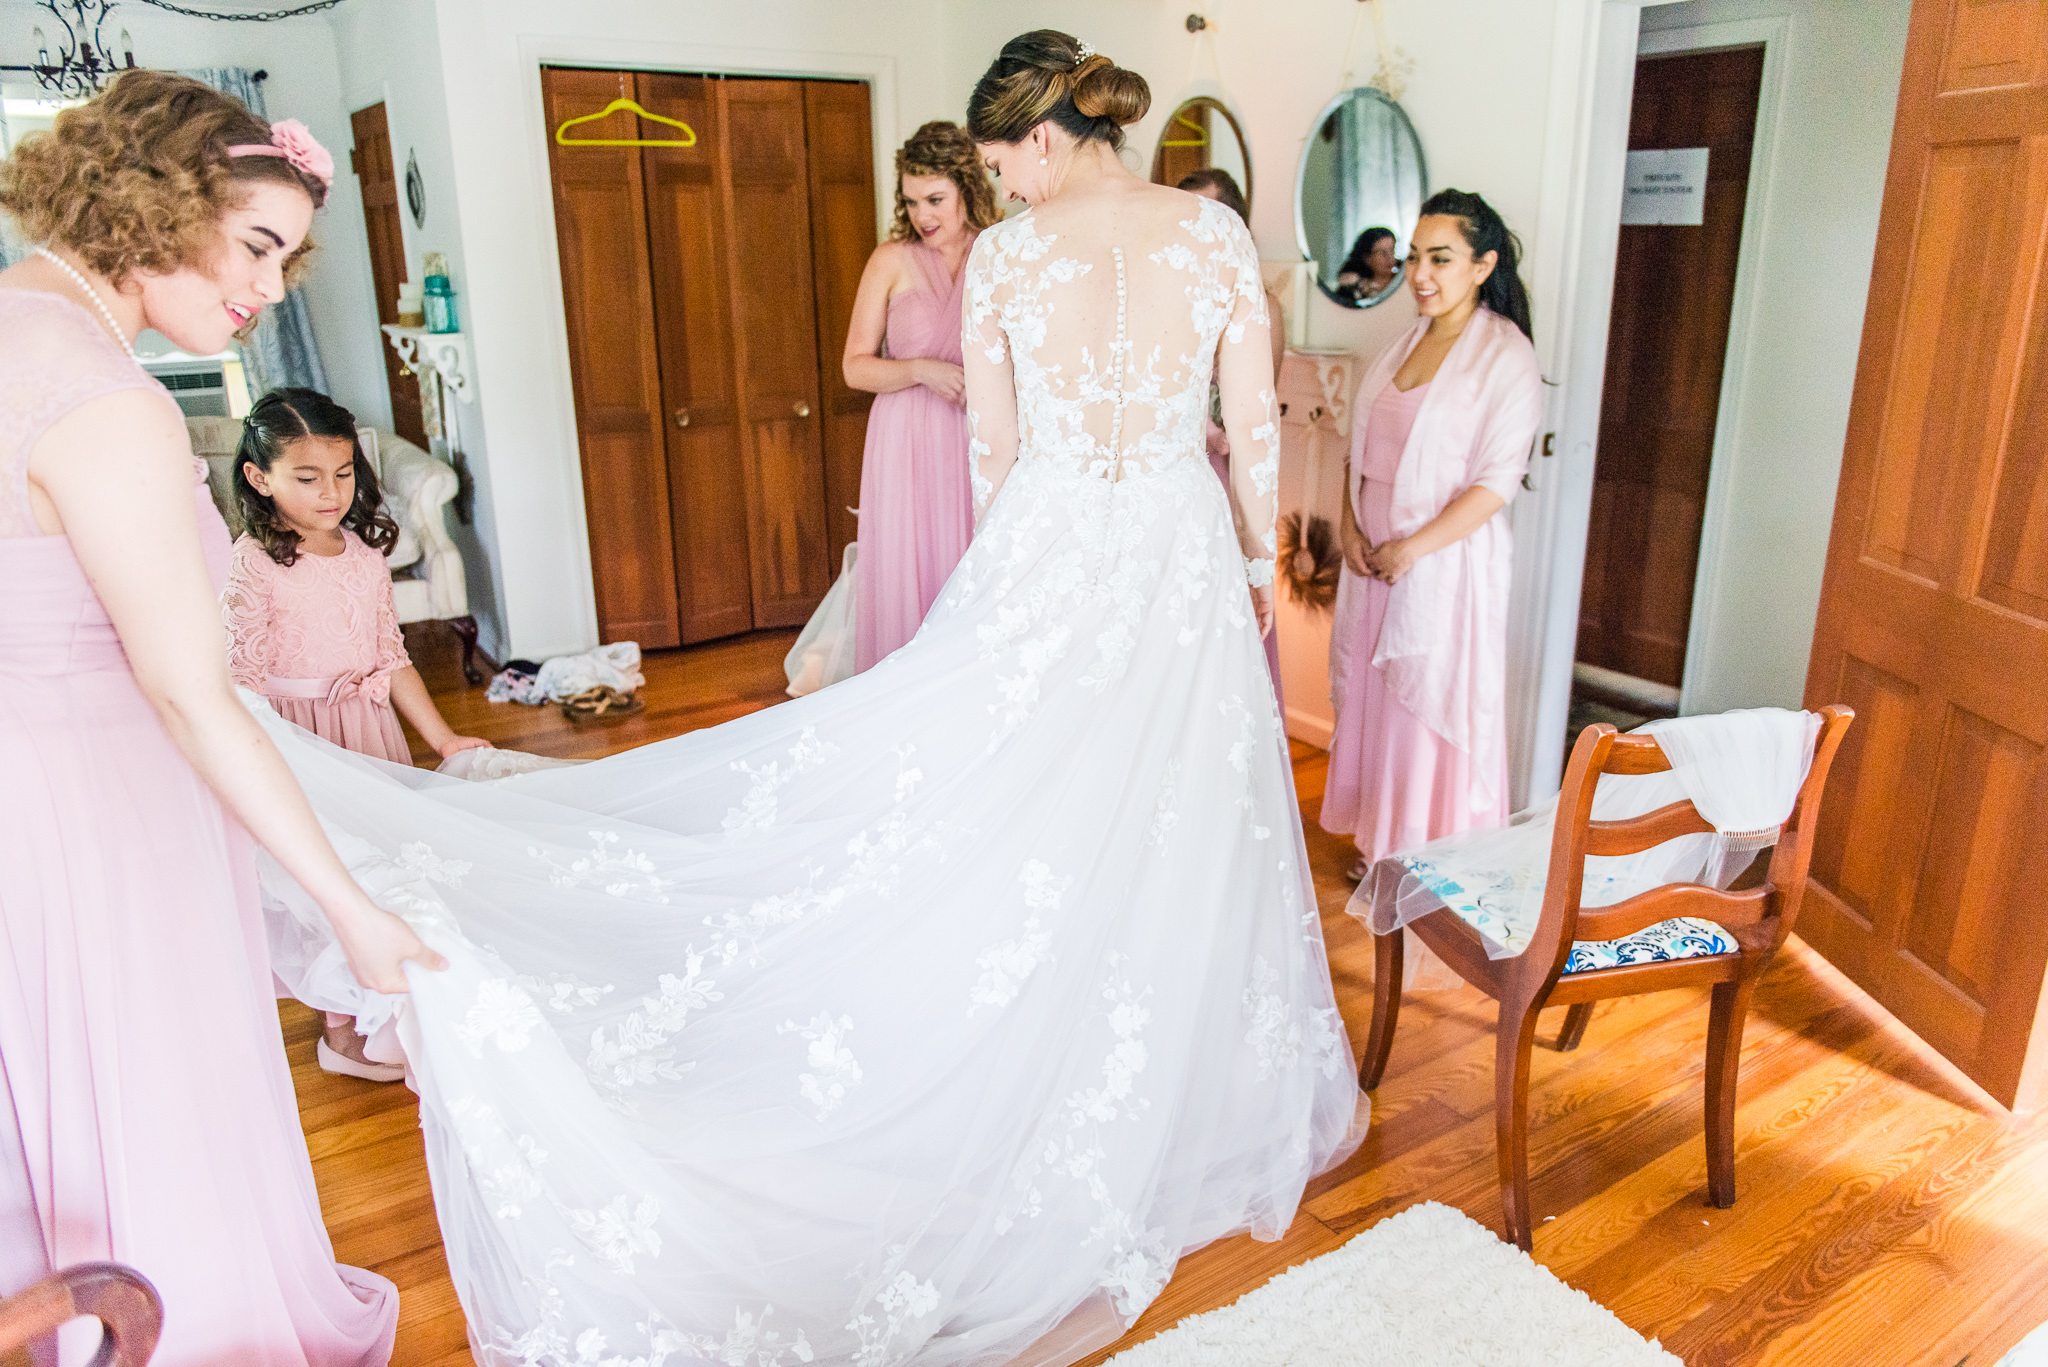 Bridesmaids in pink dresses help the bride get ready in her modest lace wedding dress with sleeves in the bridal suite at The Barns at Hamilton Station Vineyard in Leesburg, Northern Virginia before her traditional Catholic wedding